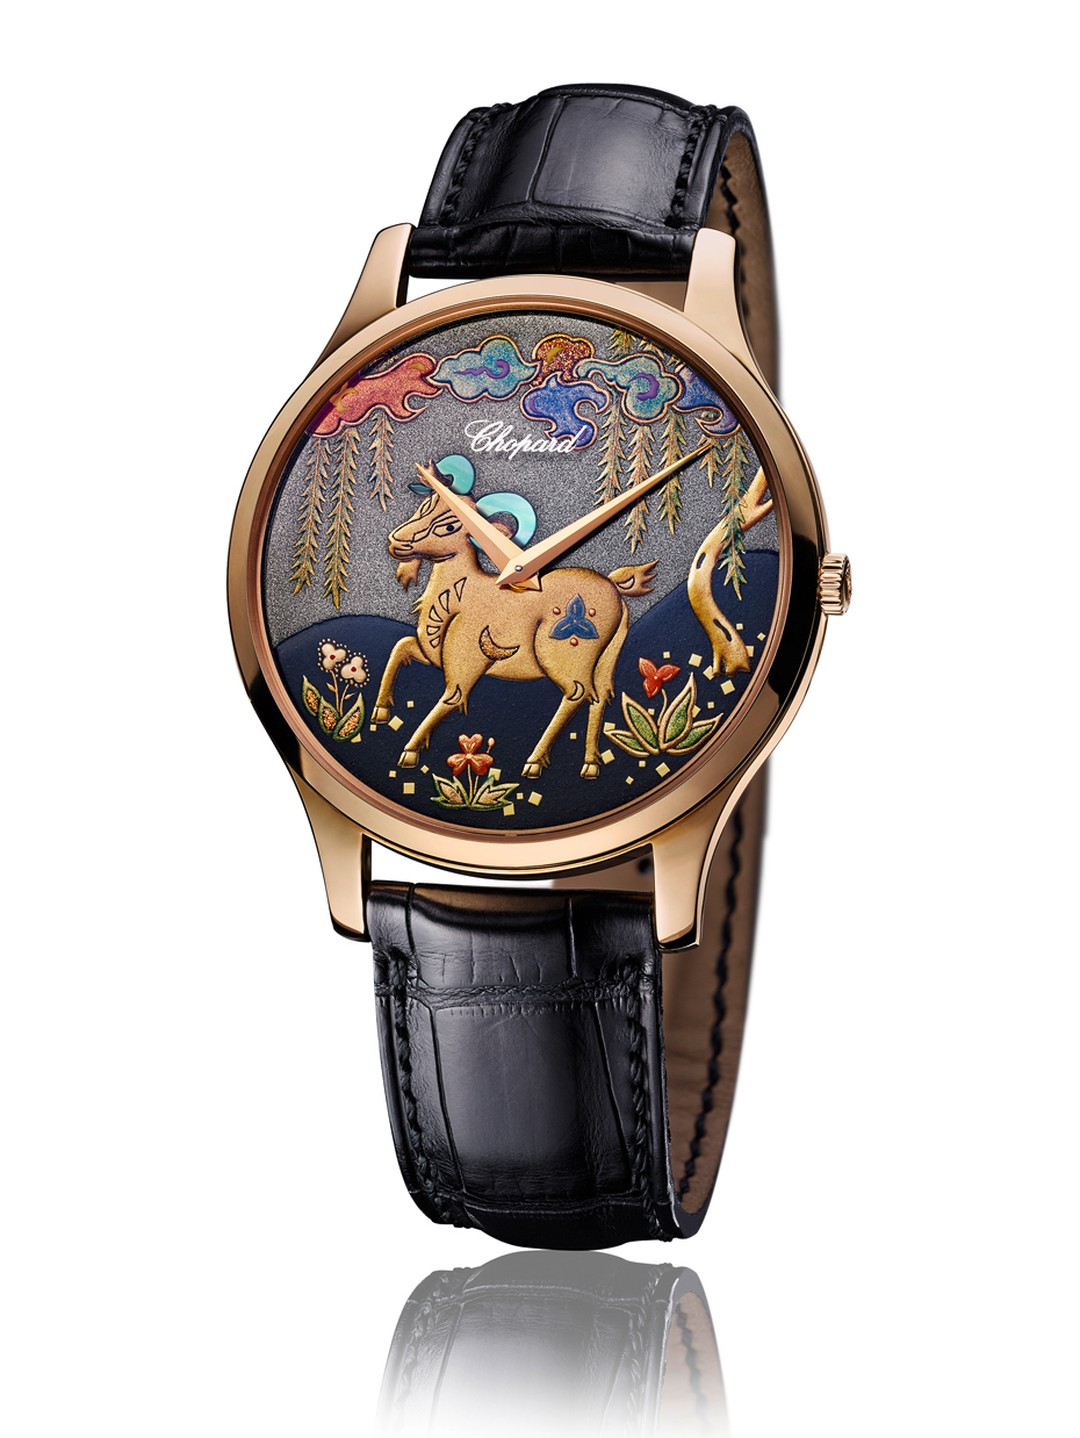 Chopard pays homage to the Chinese Year of the Goat resorting to the ancestral technique of Japanese lacquer work known as Urushi on the dial of this watch.